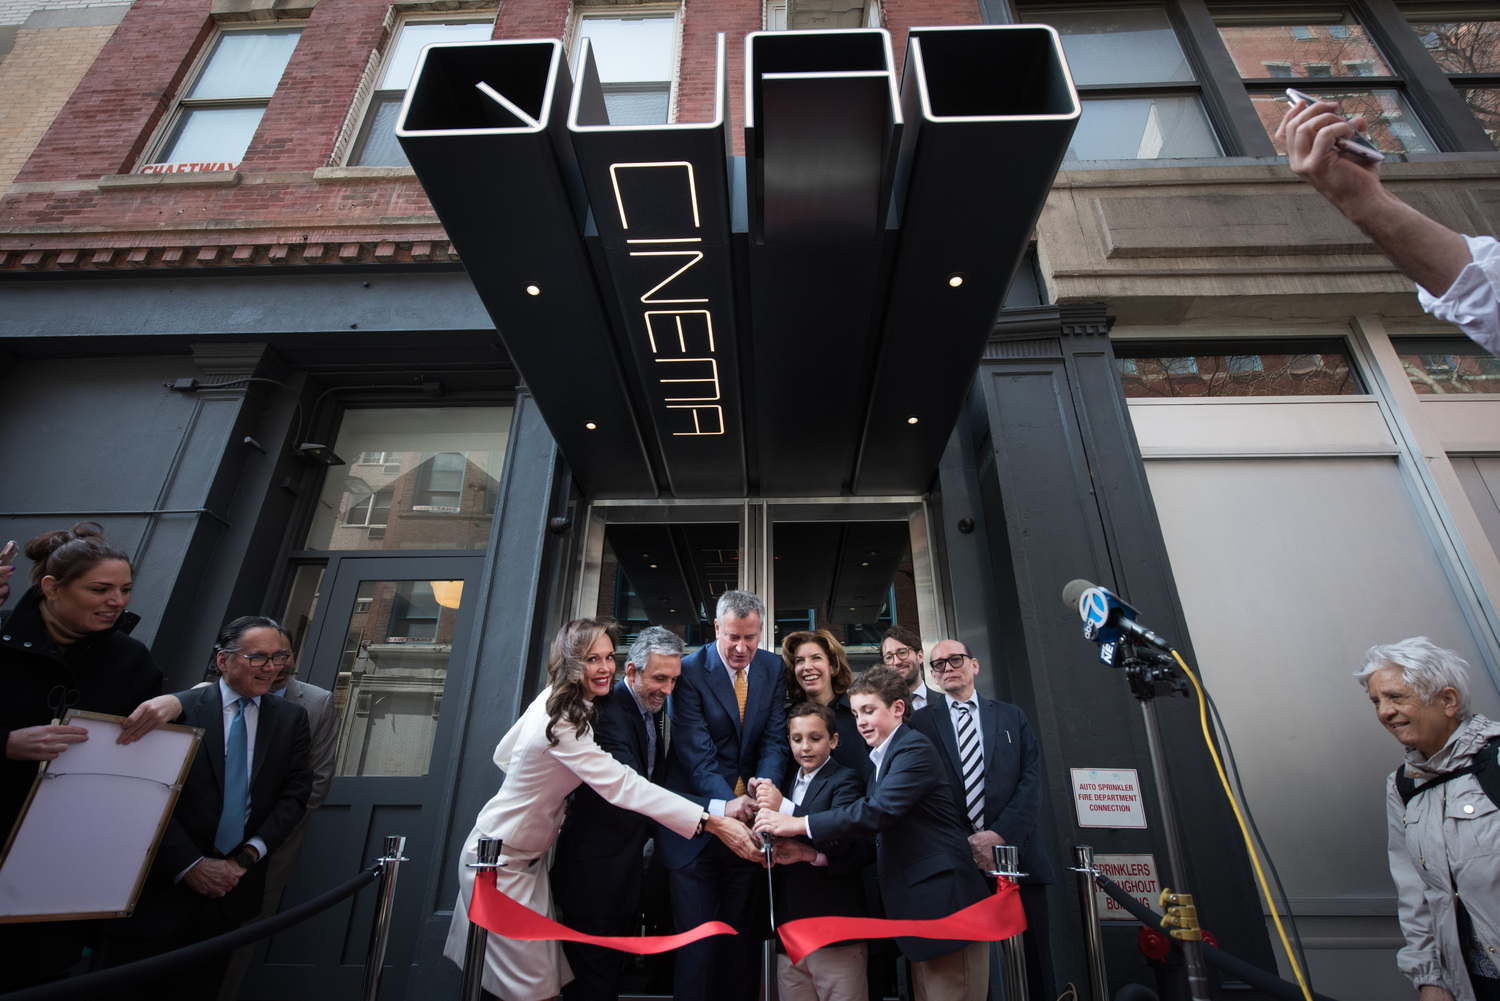 Mayor Bill de Blasio and MOME Commissioner Julie Menin attend a ribbon-cutting ceremony for the relaunch of the Quad Cinema in Greenwich Village on Thursday, April 13, 2017.